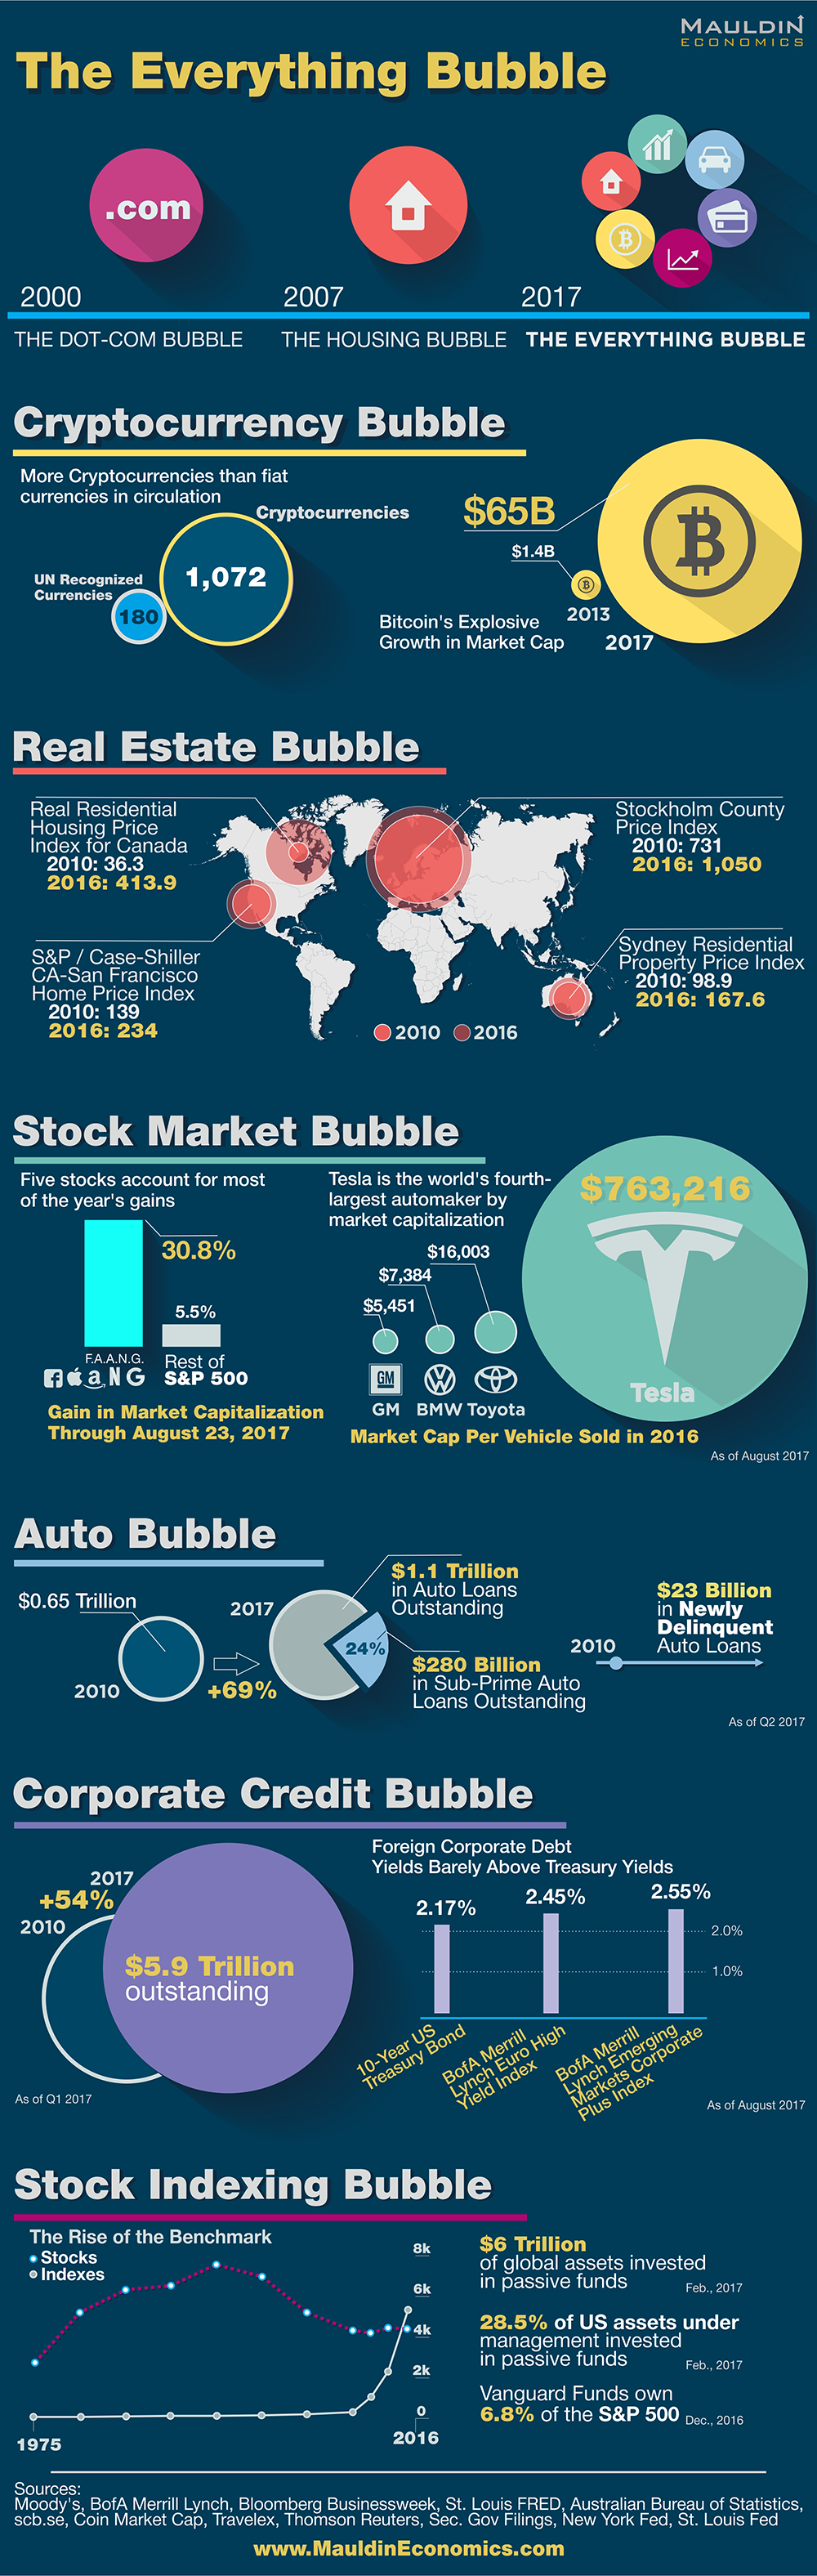 The Everything Bubble is About to Pop - Infographic